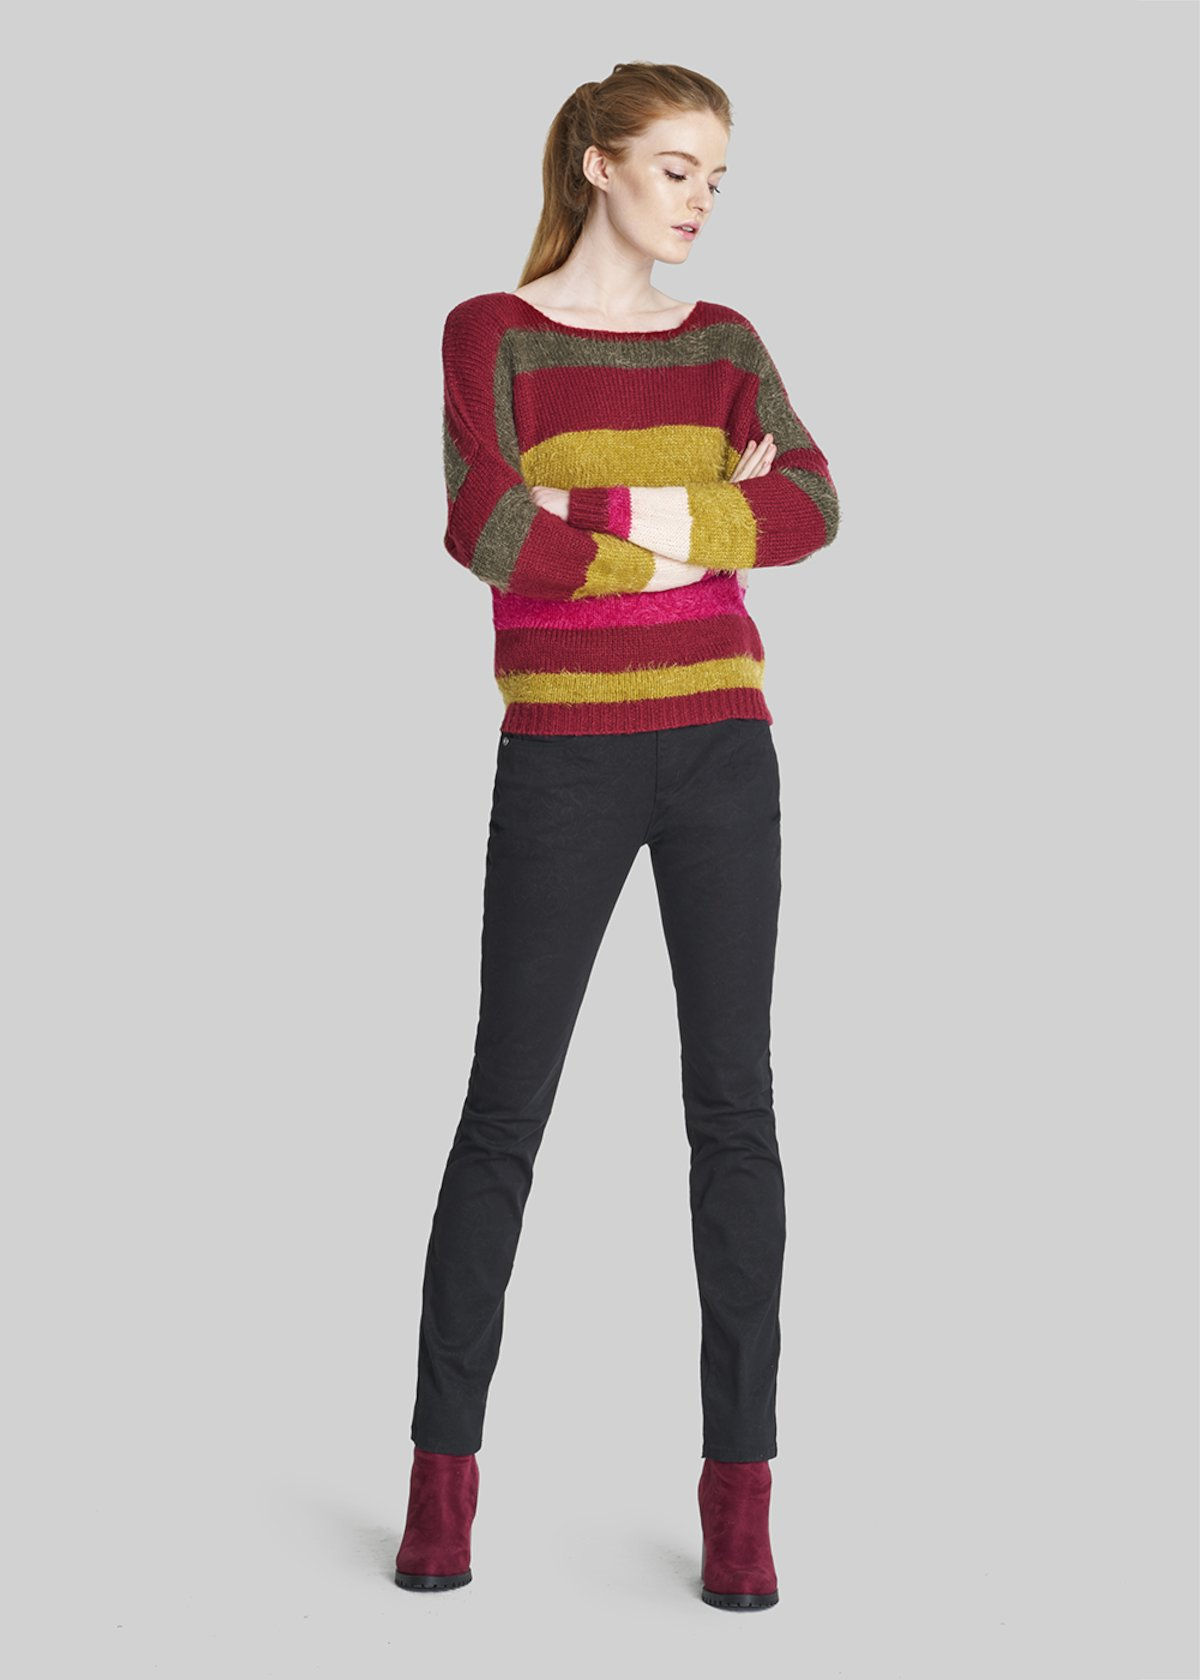 Miss, stripes fantasy round neck sweater - Bordeaux / Bronze  Stripes